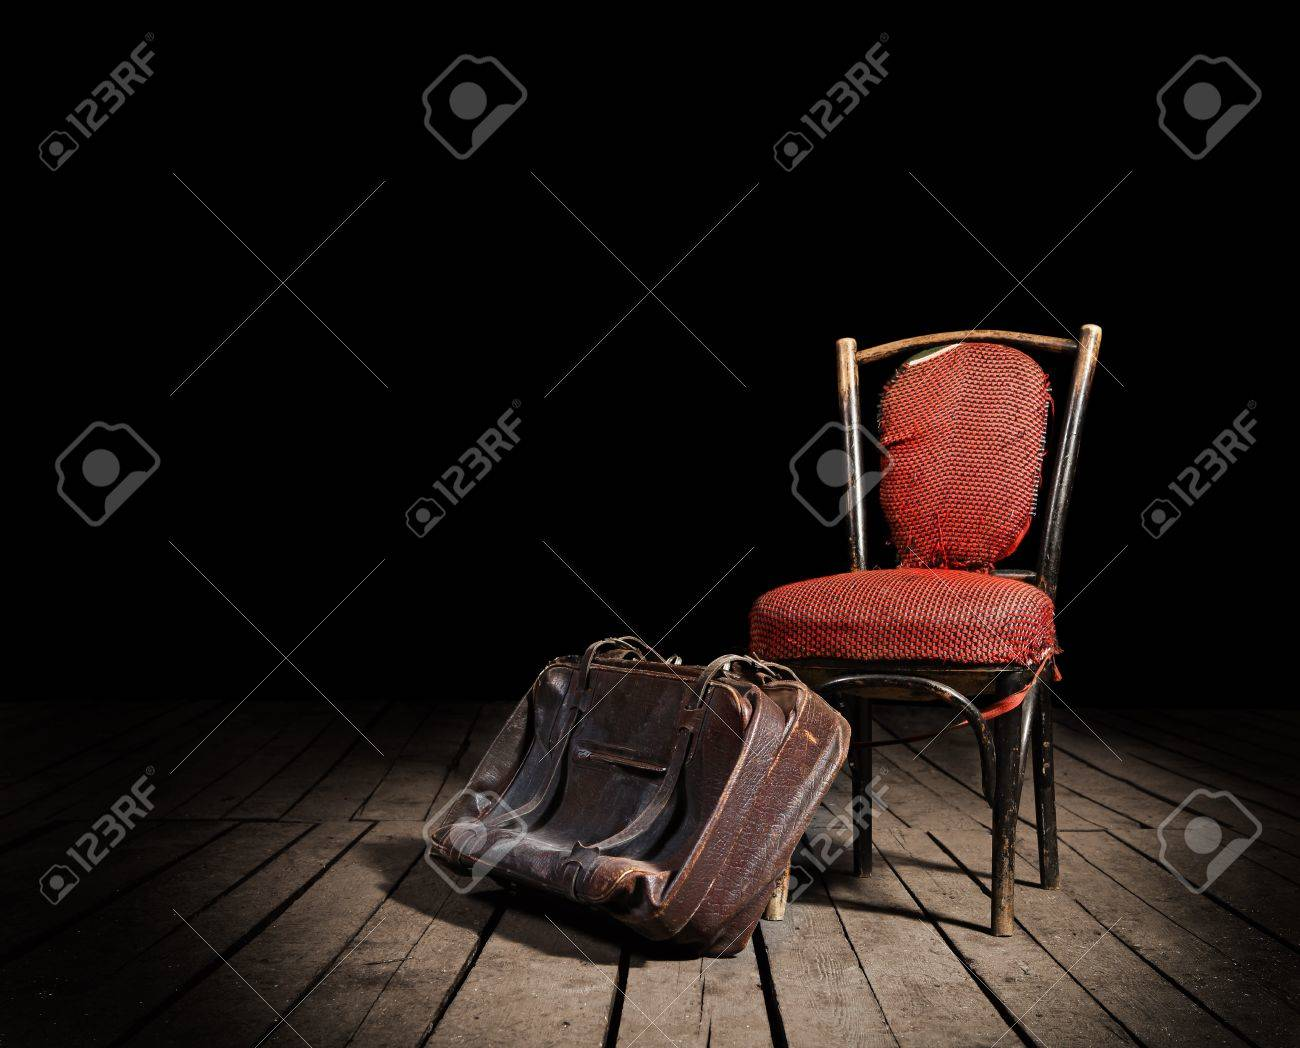 Red chair photography - Old Red Chair And Well Traveled Vintage Suitcase On Wooden Floor Stock Photo 14058573